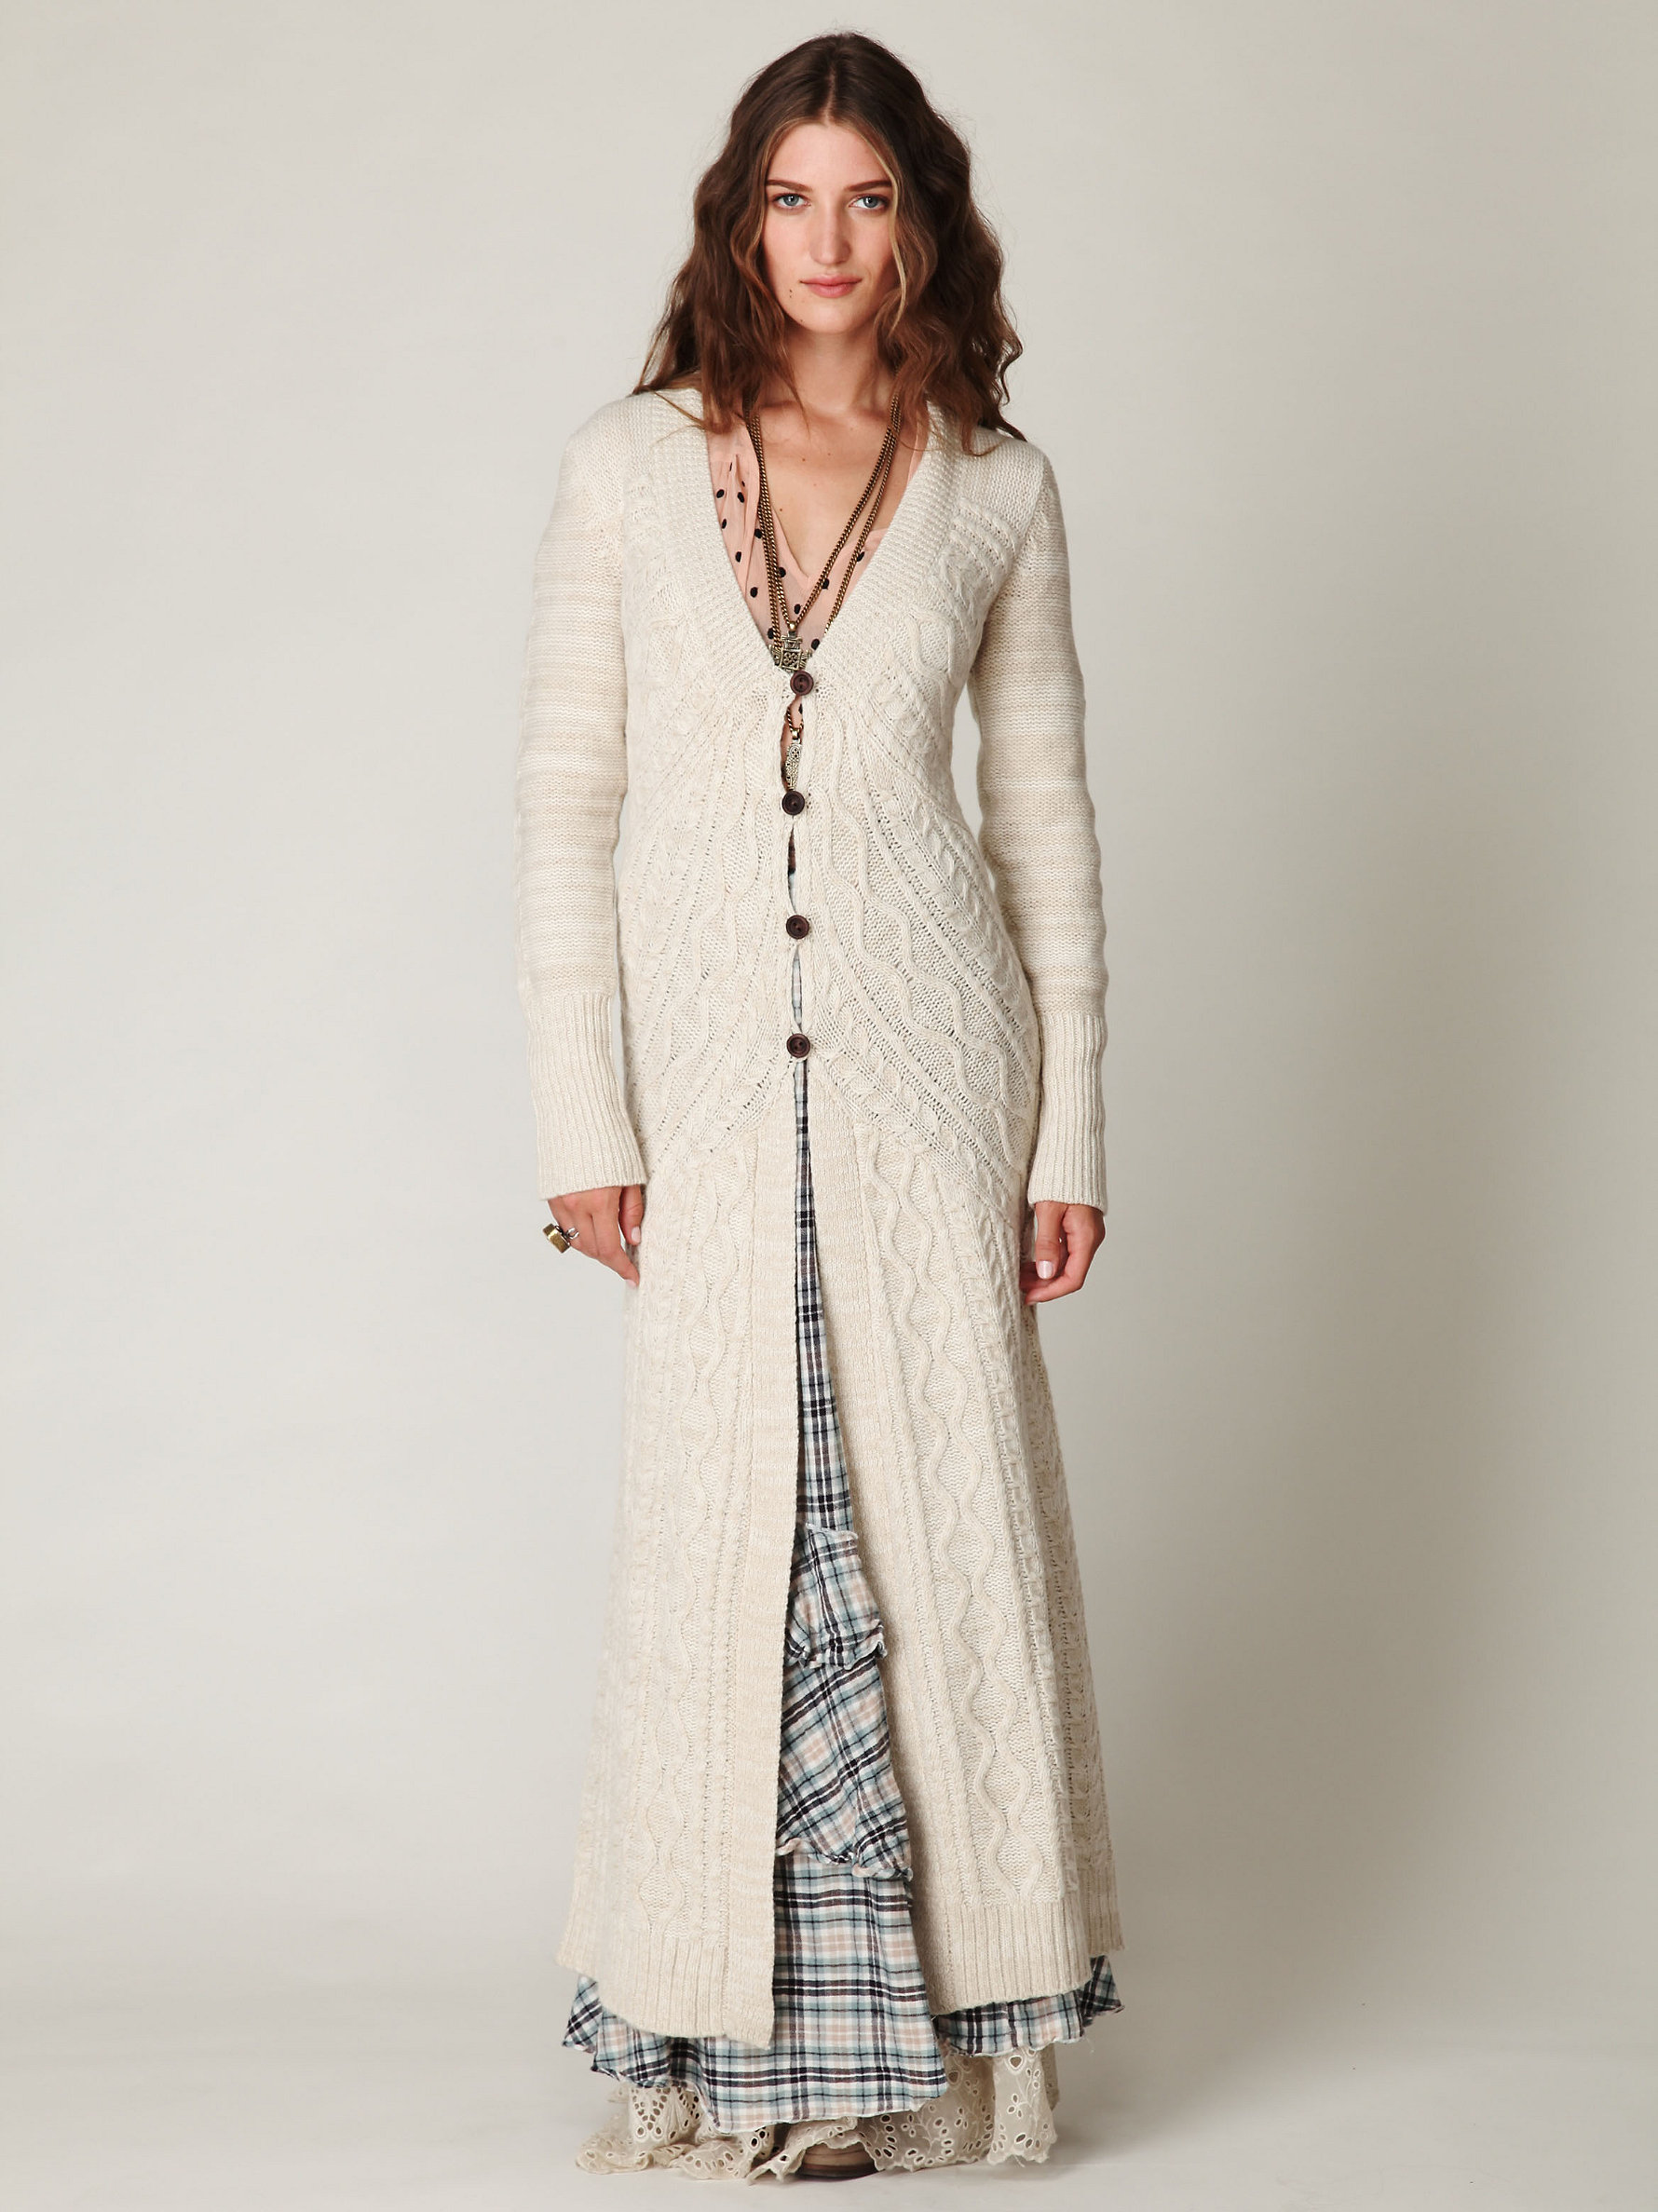 Cardigan Length - Cashmere Sweater England